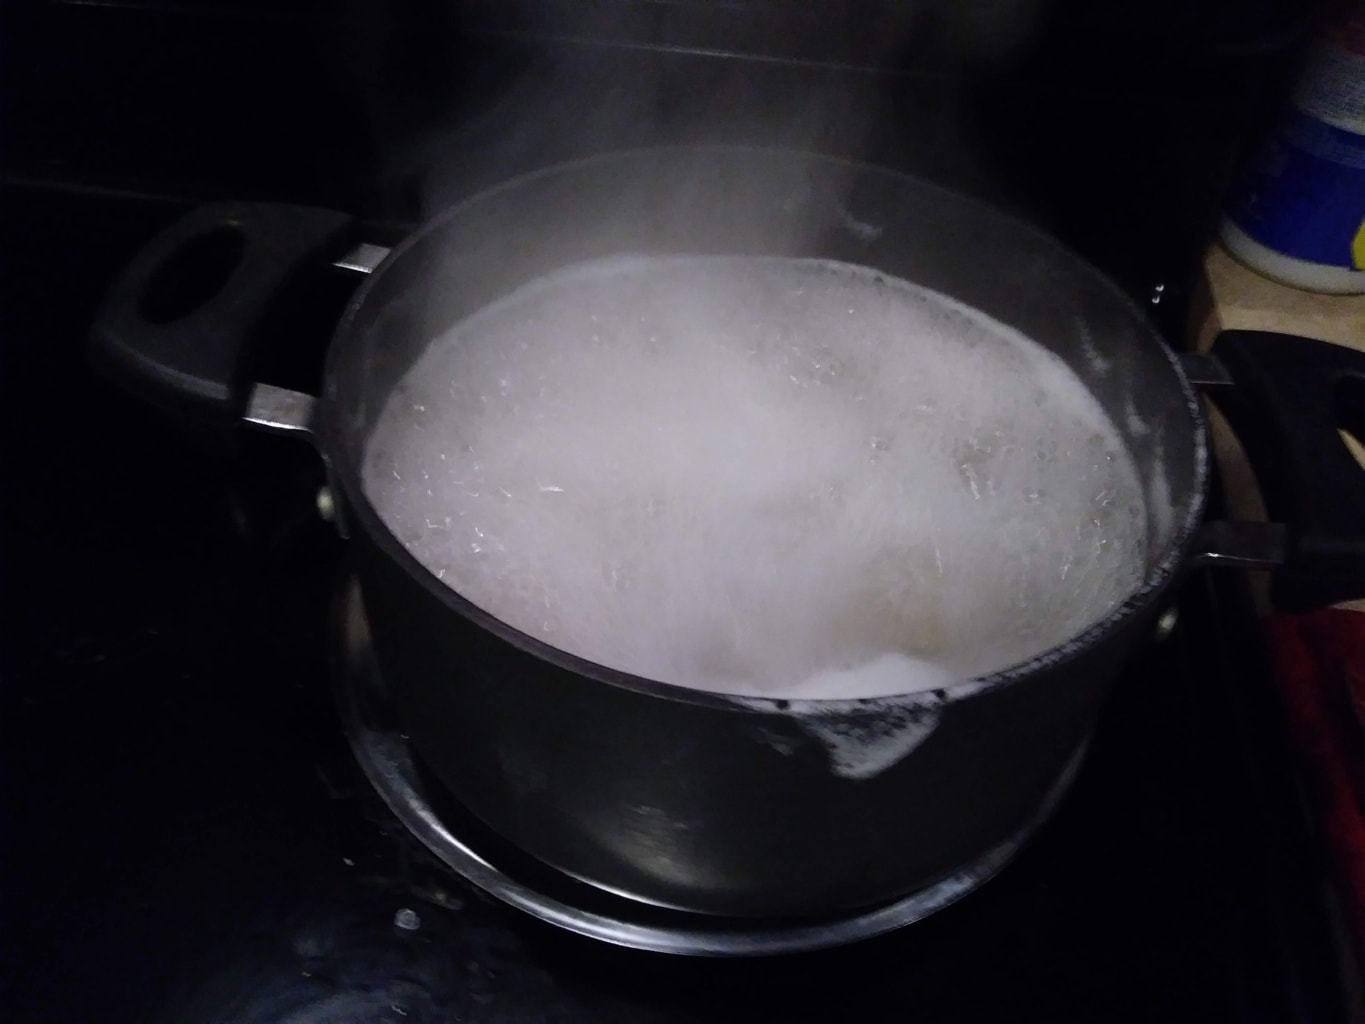 Cooking the pasta